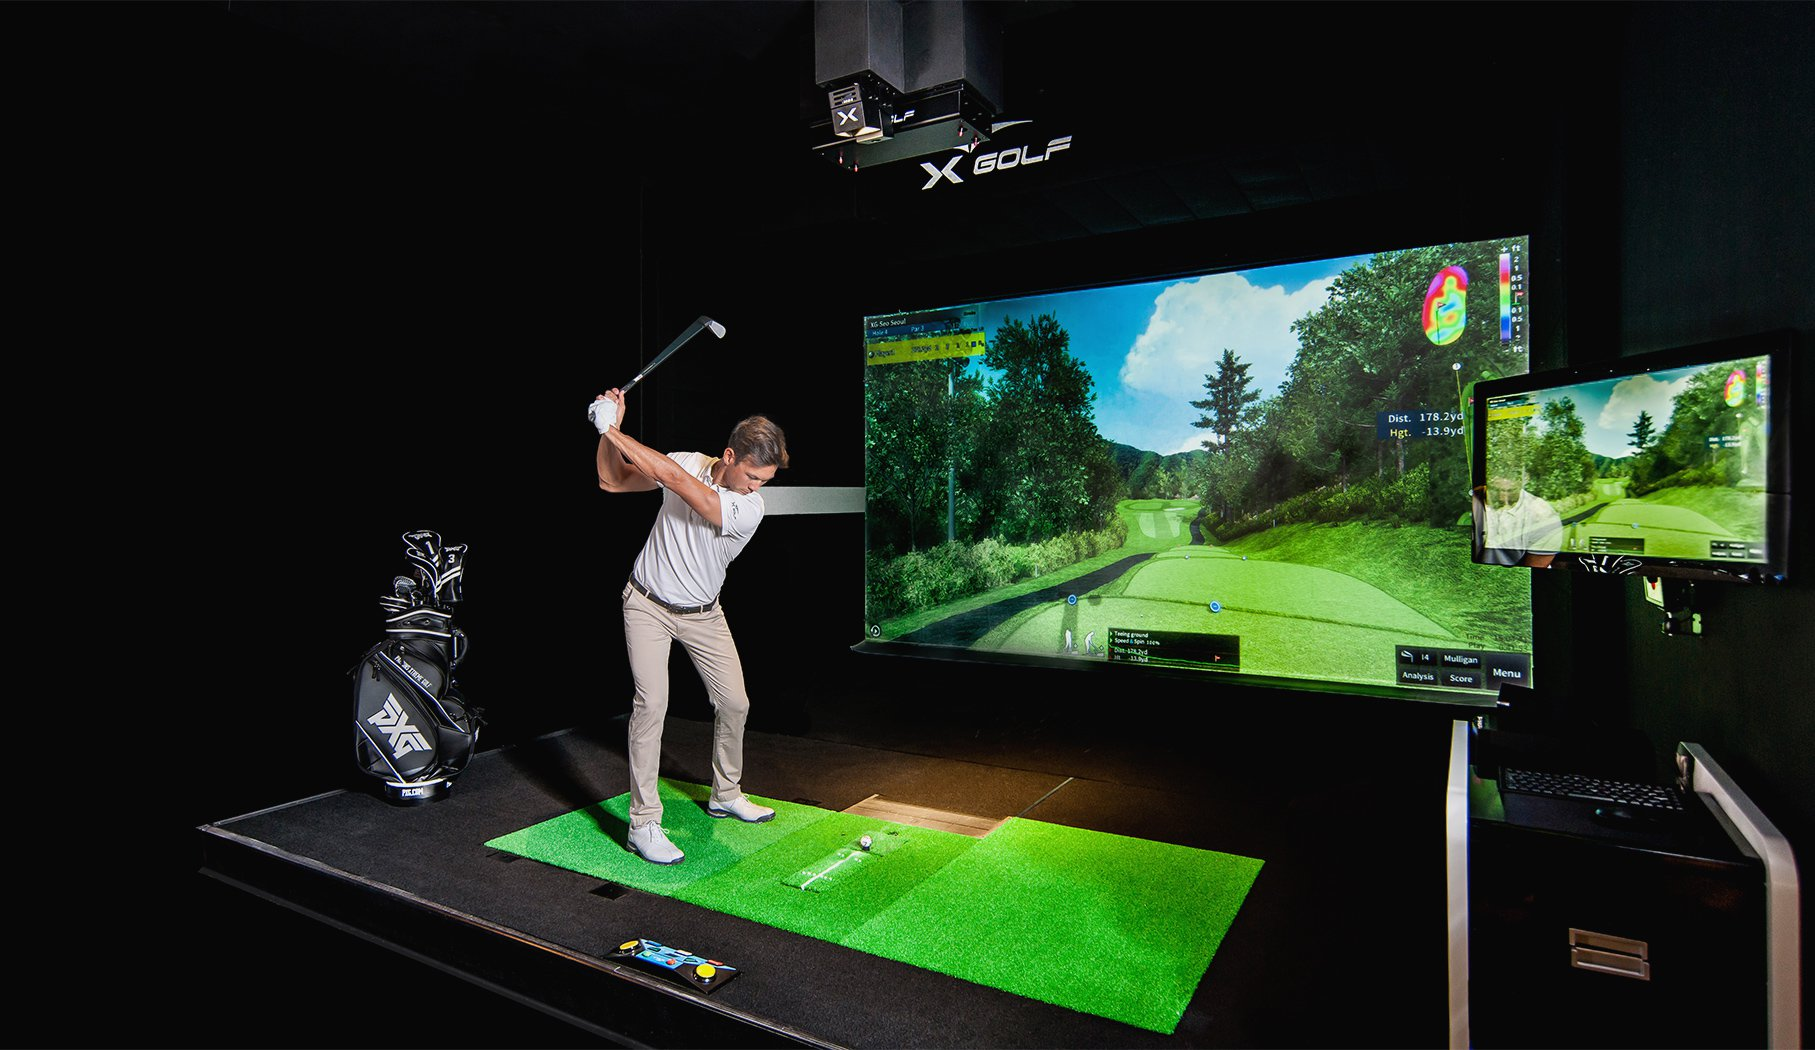 how accurate are golf simulators